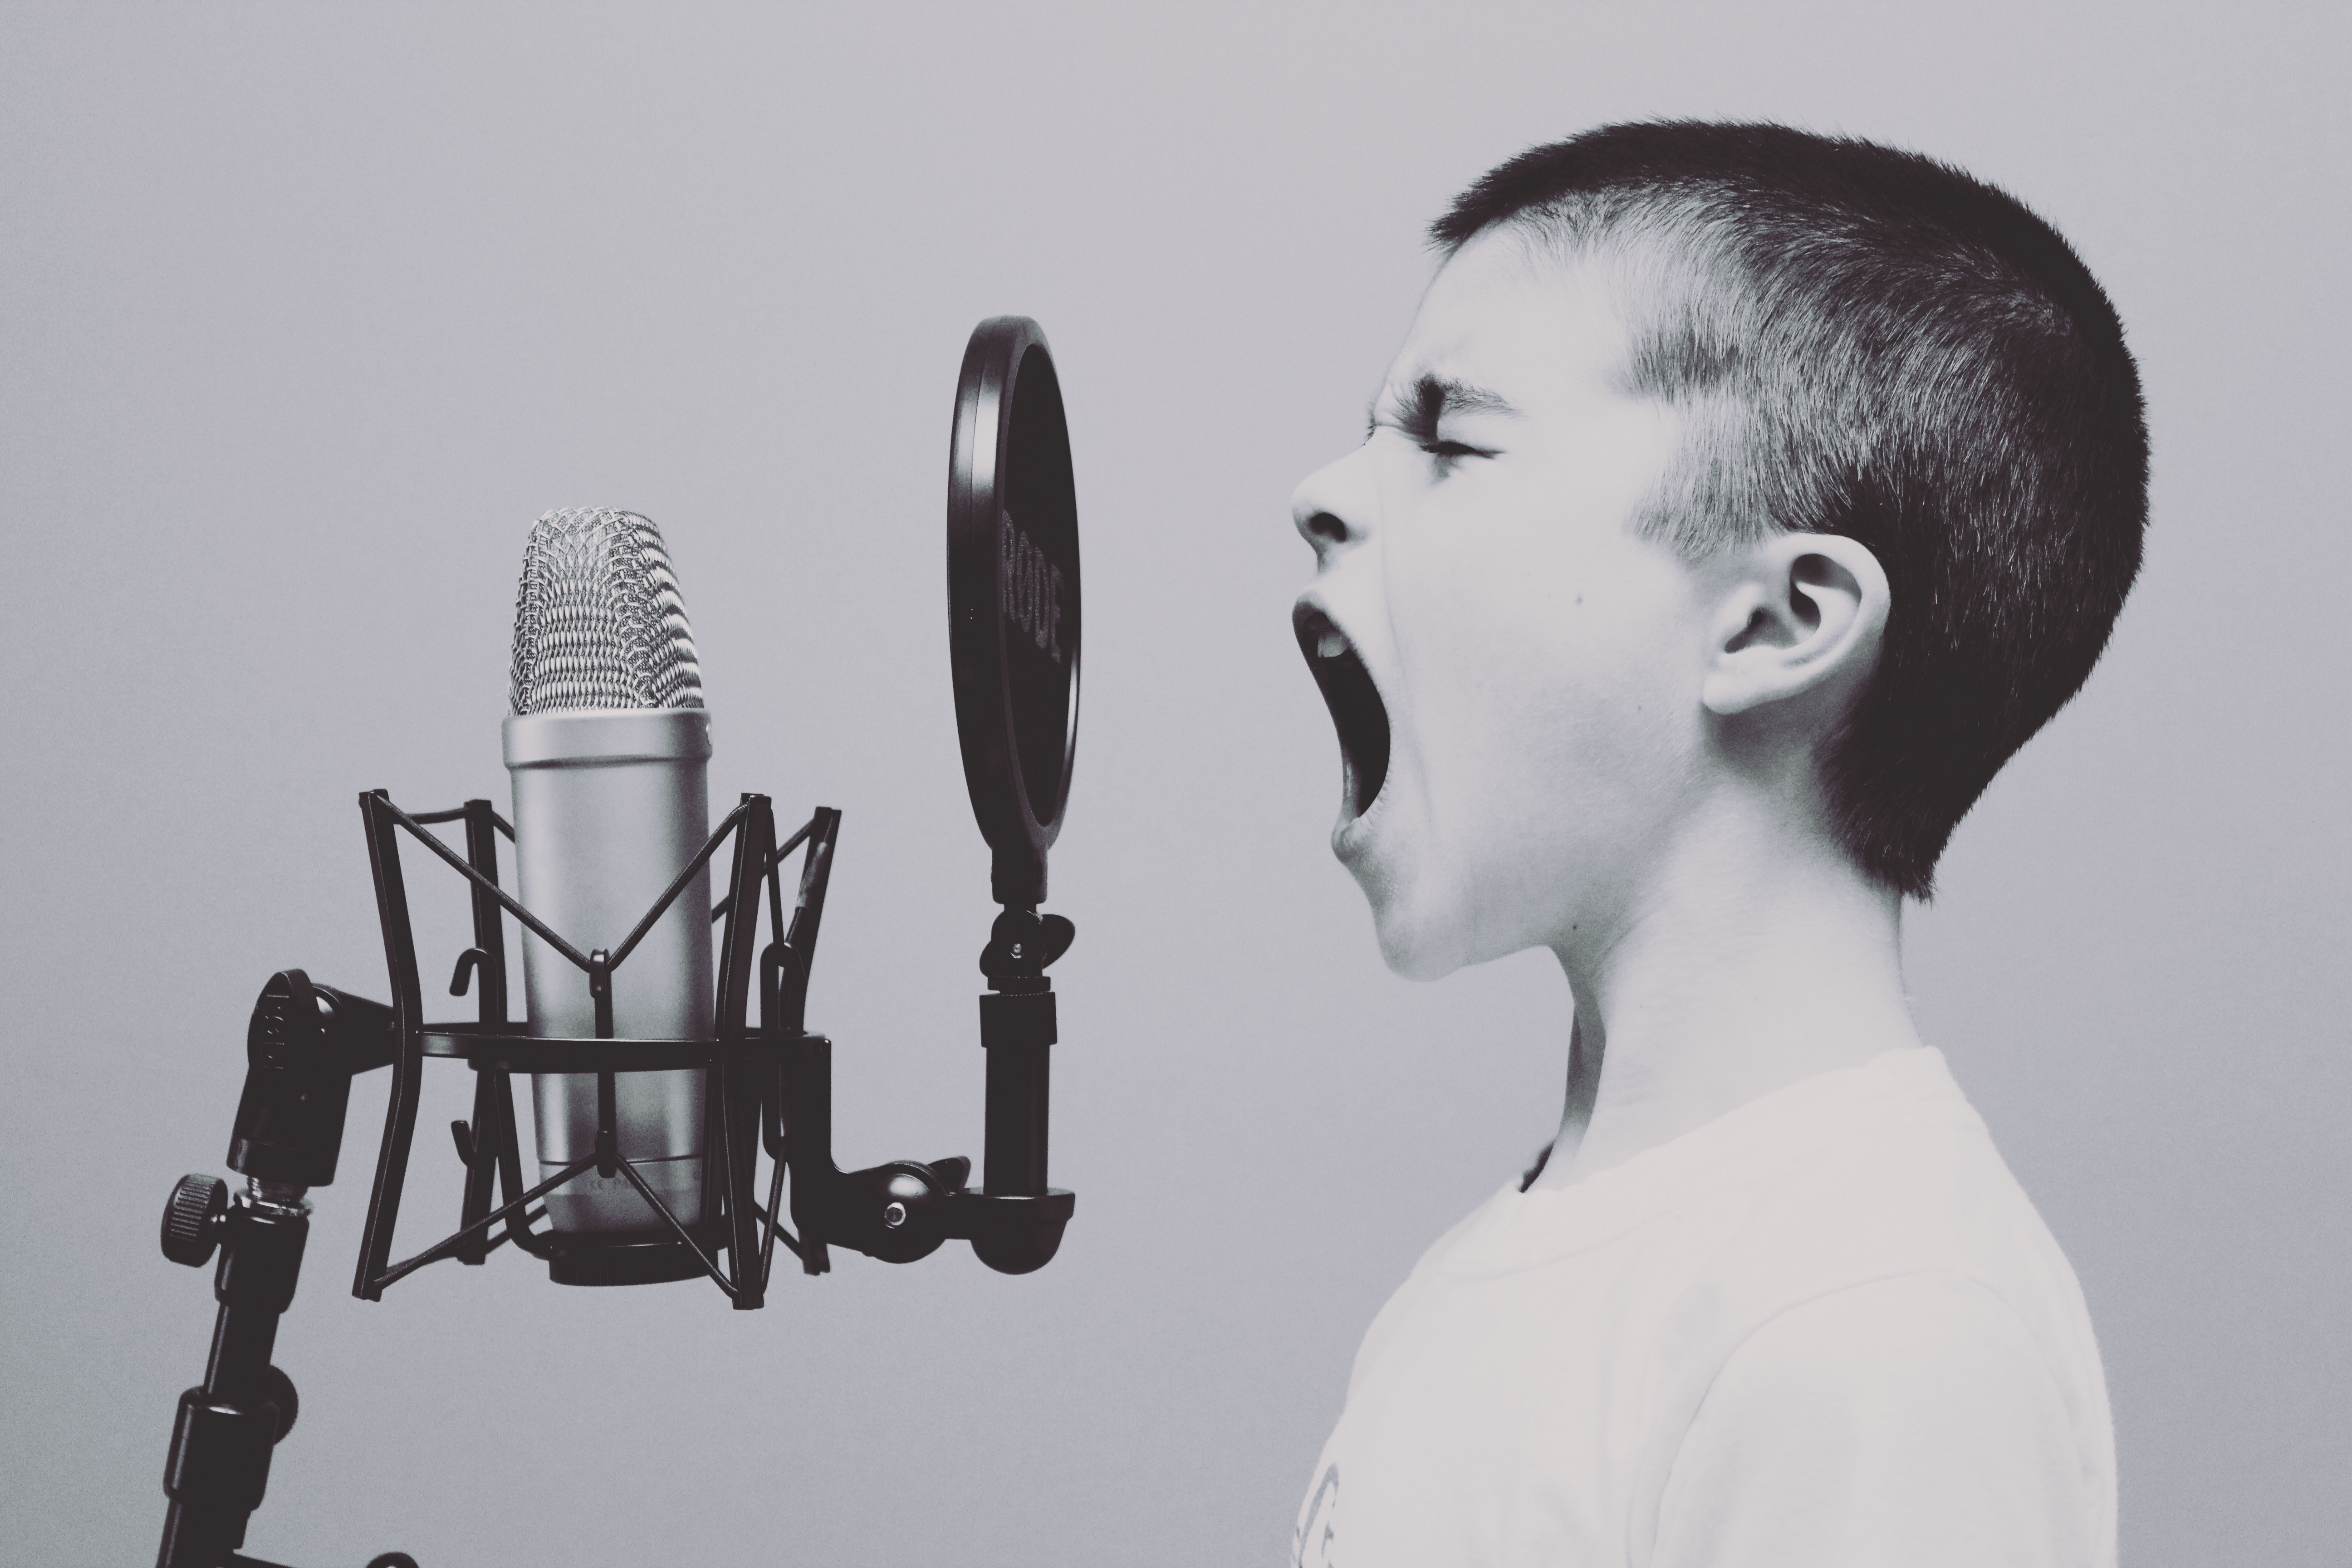 Giving your children a voice